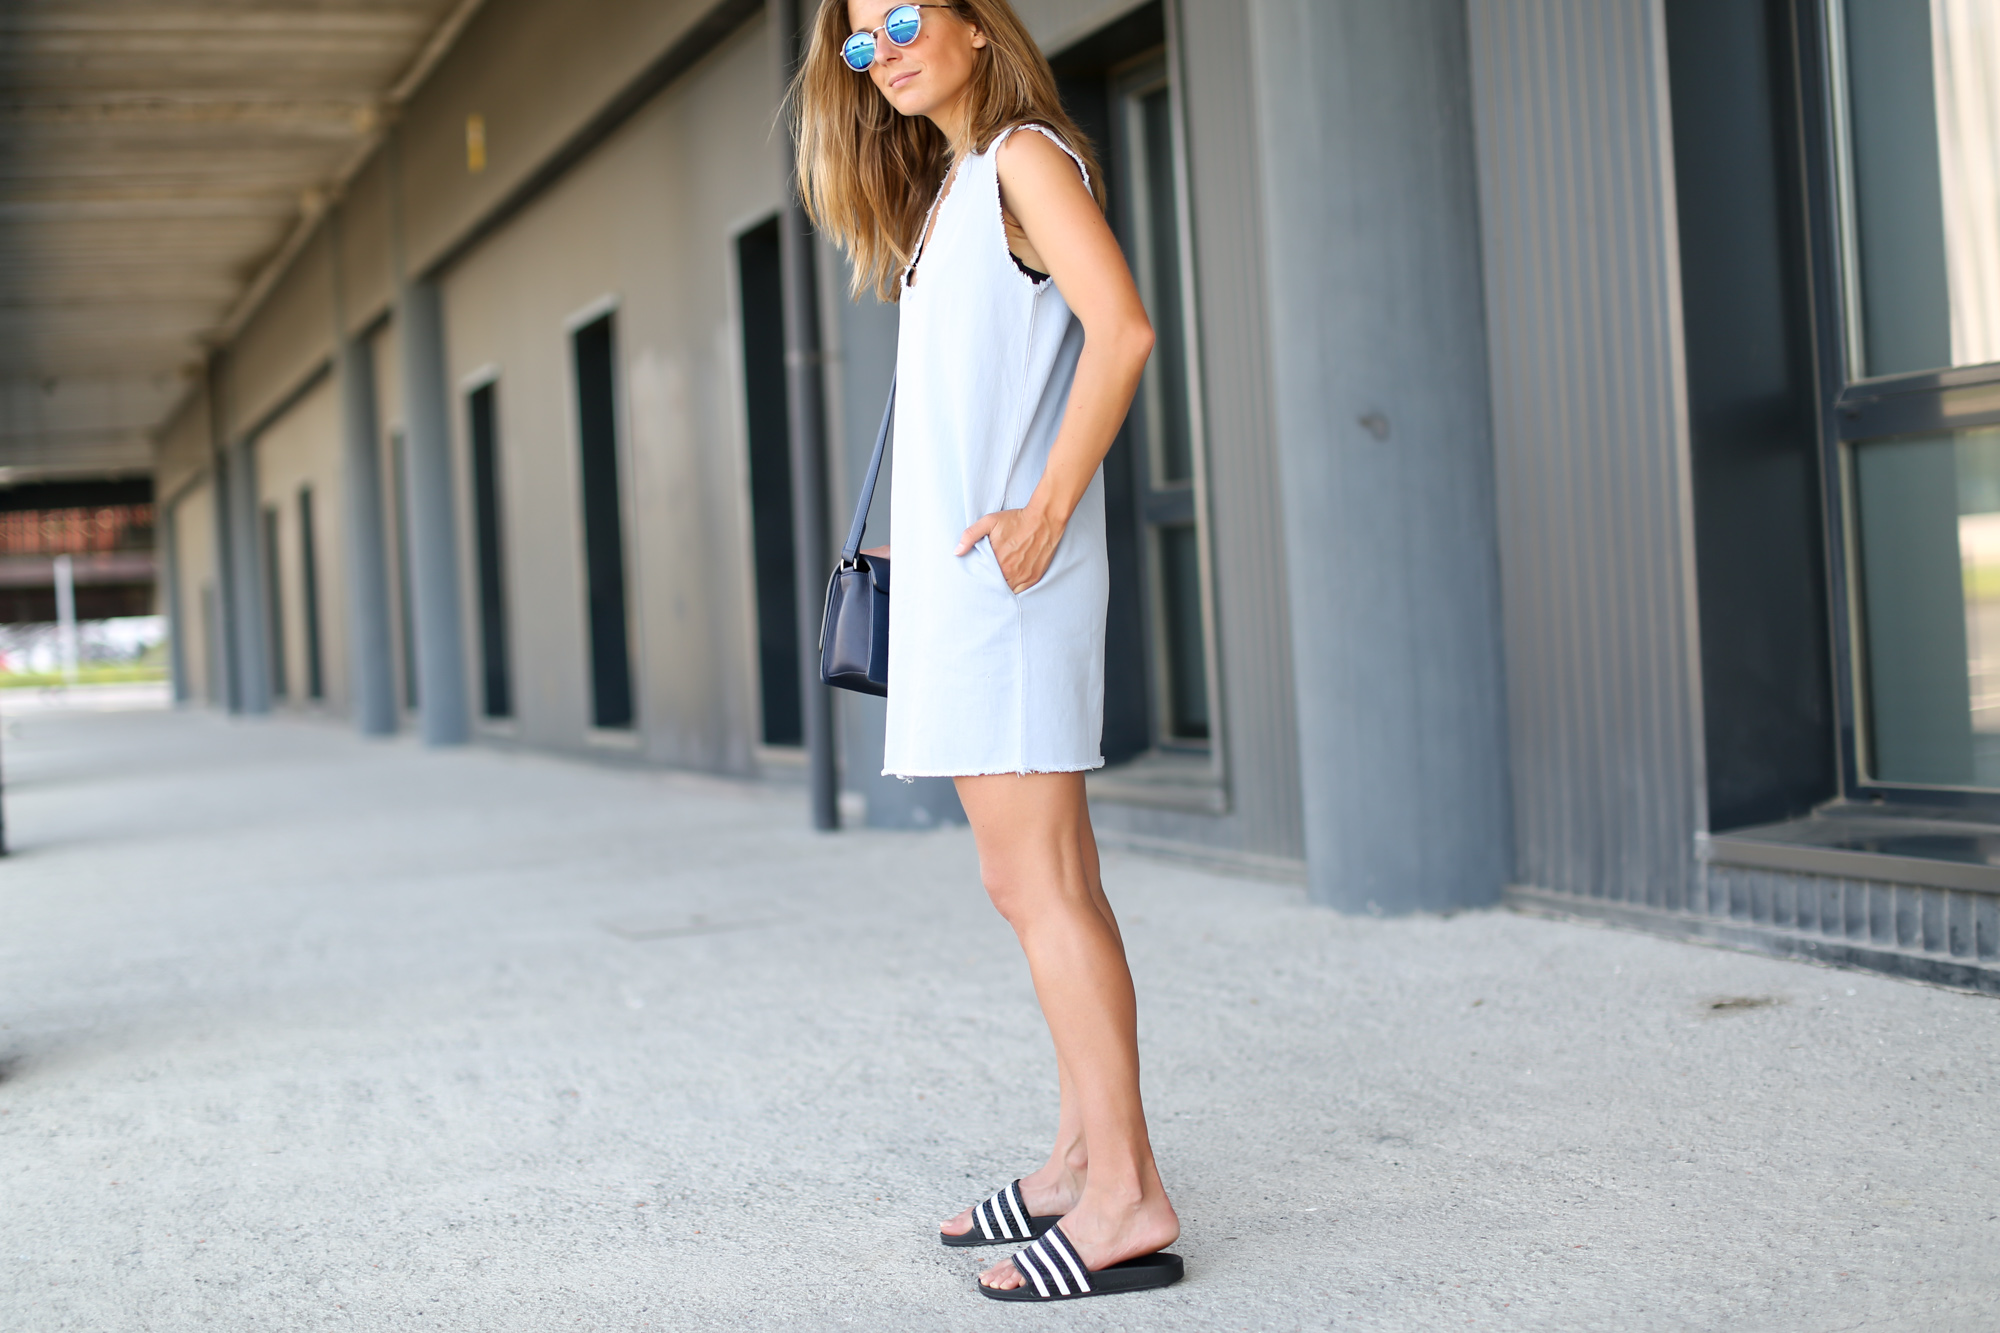 Clochet-streetstyle-adidas-adilette-bimba&lola-denim-dress-otherstories-leather-bag-6